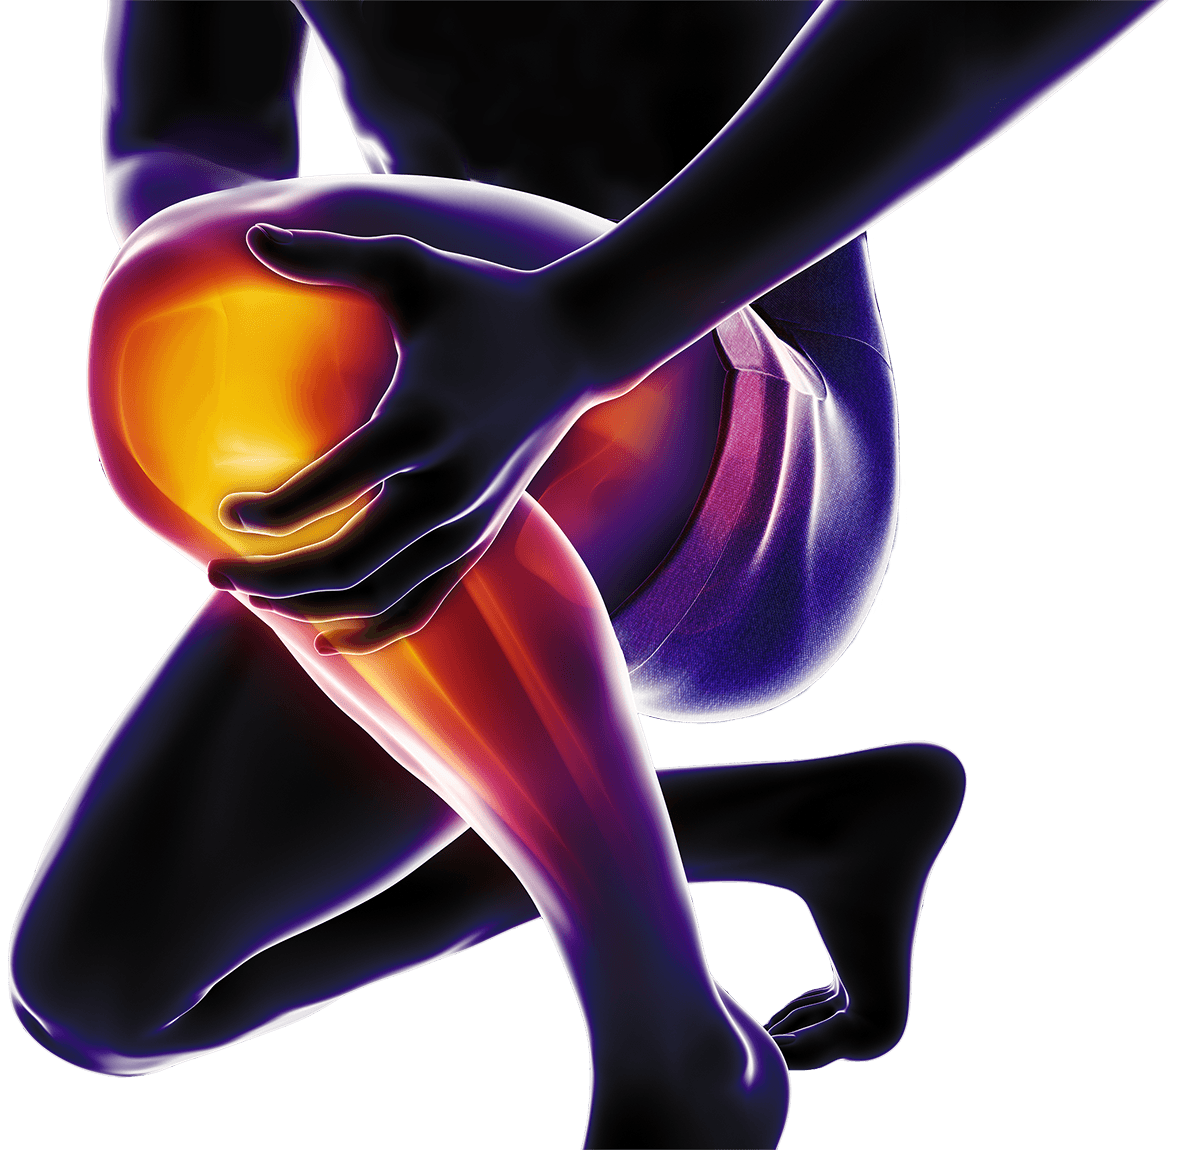 Arthritis Pain Reliever Clocking Out Too Soon?